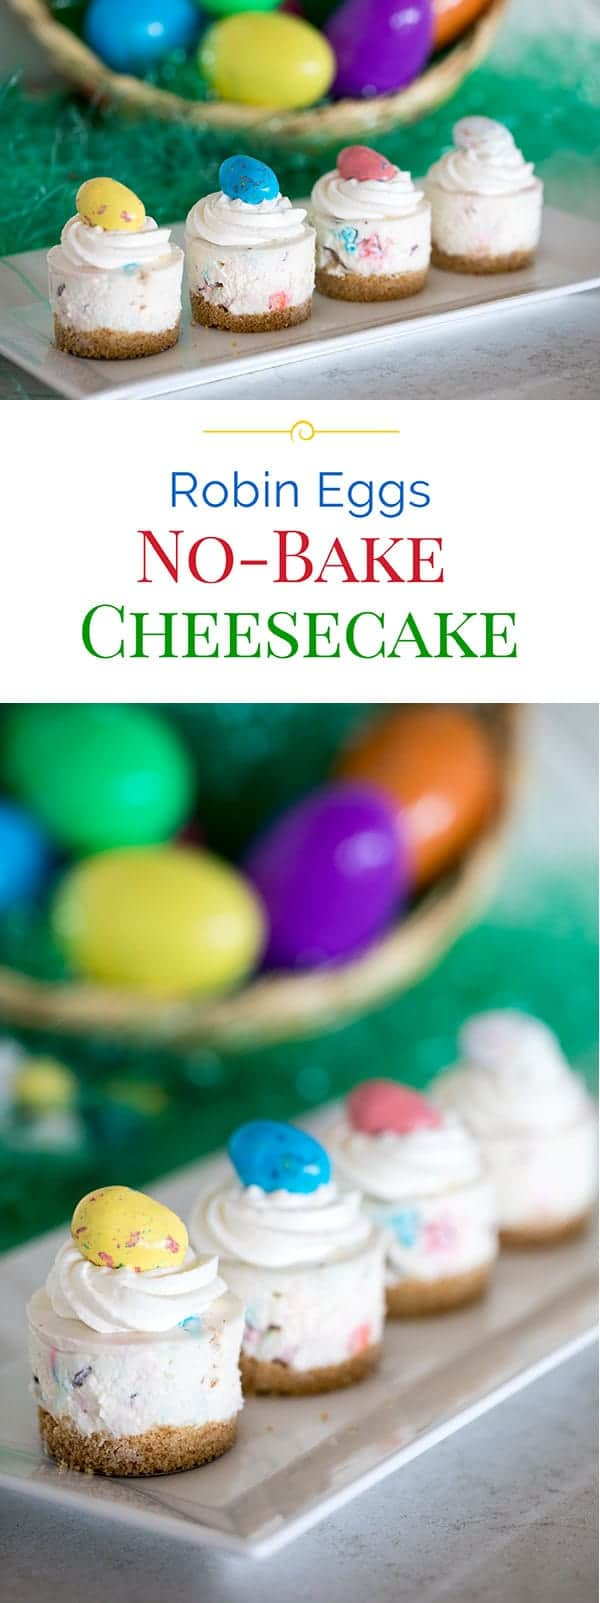 Cute little, light and fluffy mini no-bake cheesecakes on a graham cracker crust loaded with chunks of chocolate covered malted milk balls dressed up for Easter. This Robin Eggs No-Bake Cheesecake recipe is super easy to make too!